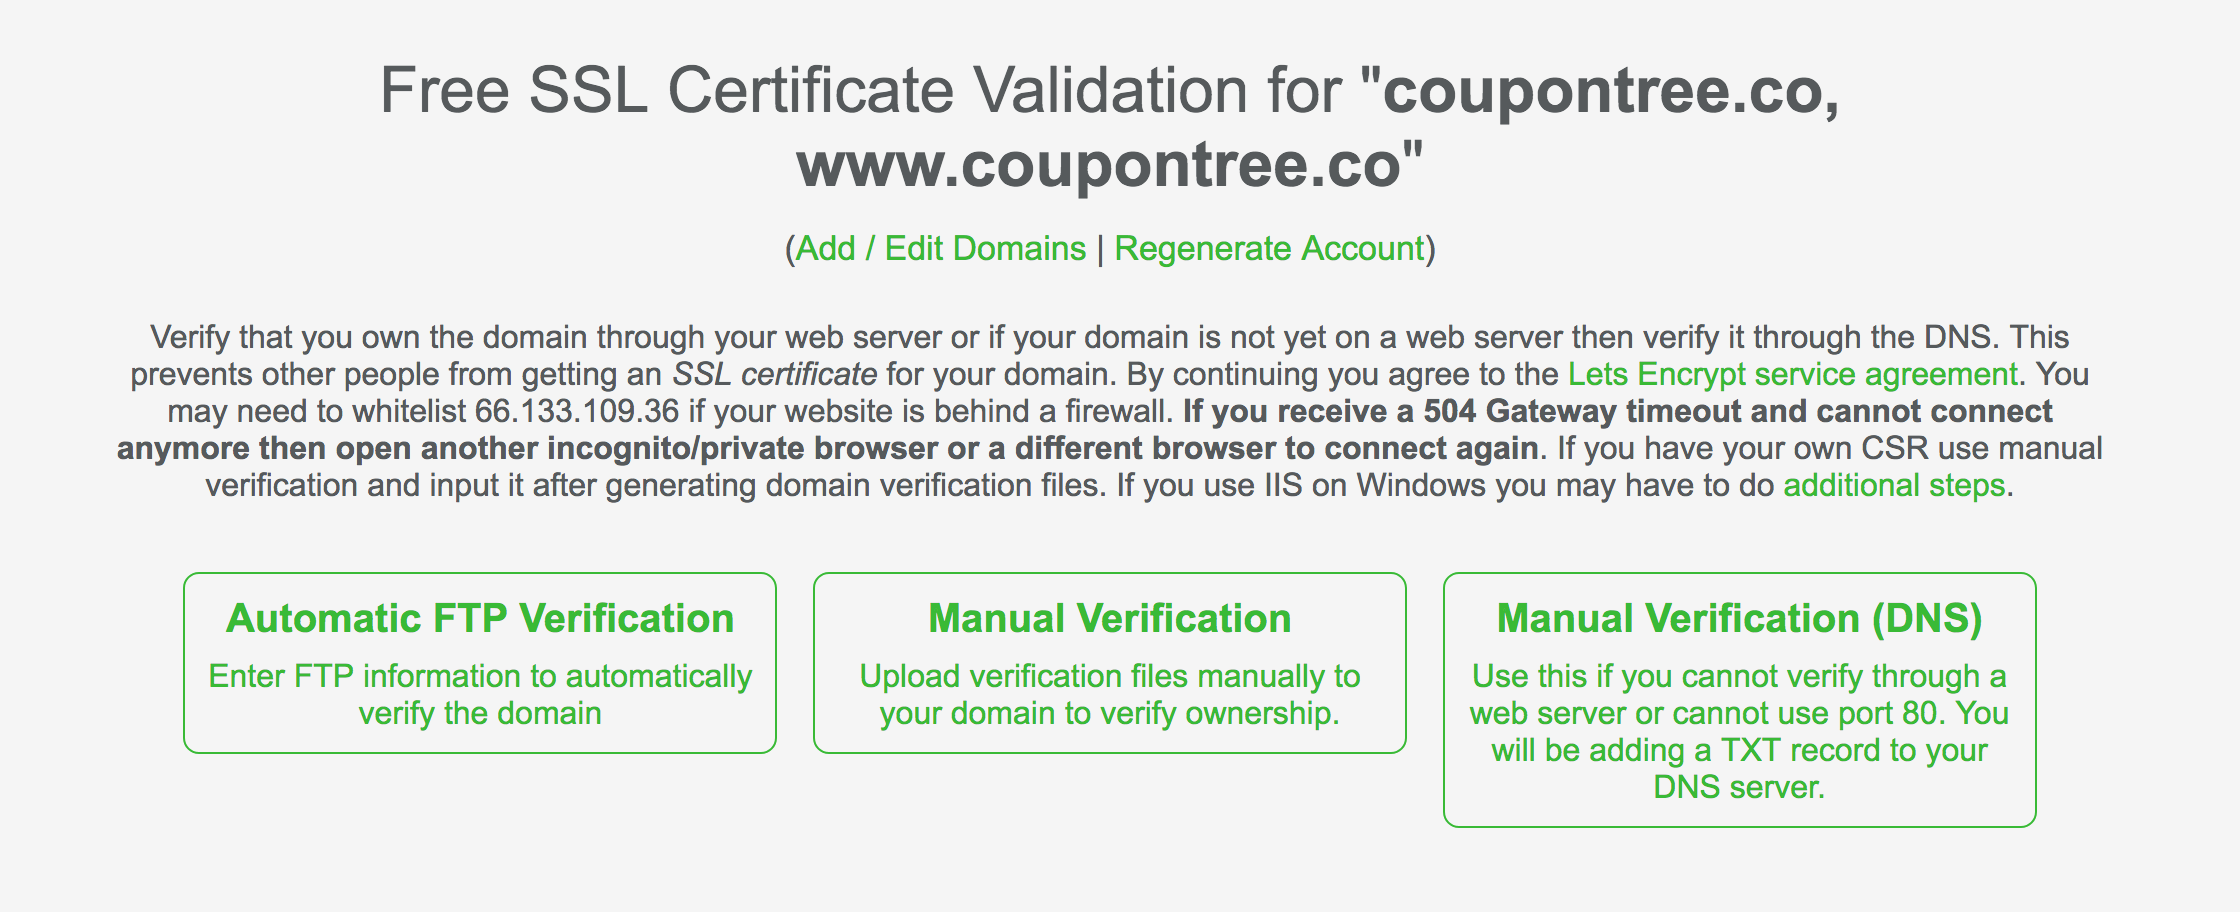 How to active lets encrypt when cpanel does not support coupontree automatic ftp verification enter ftp information to website automatically confirm domain name xflitez Choice Image